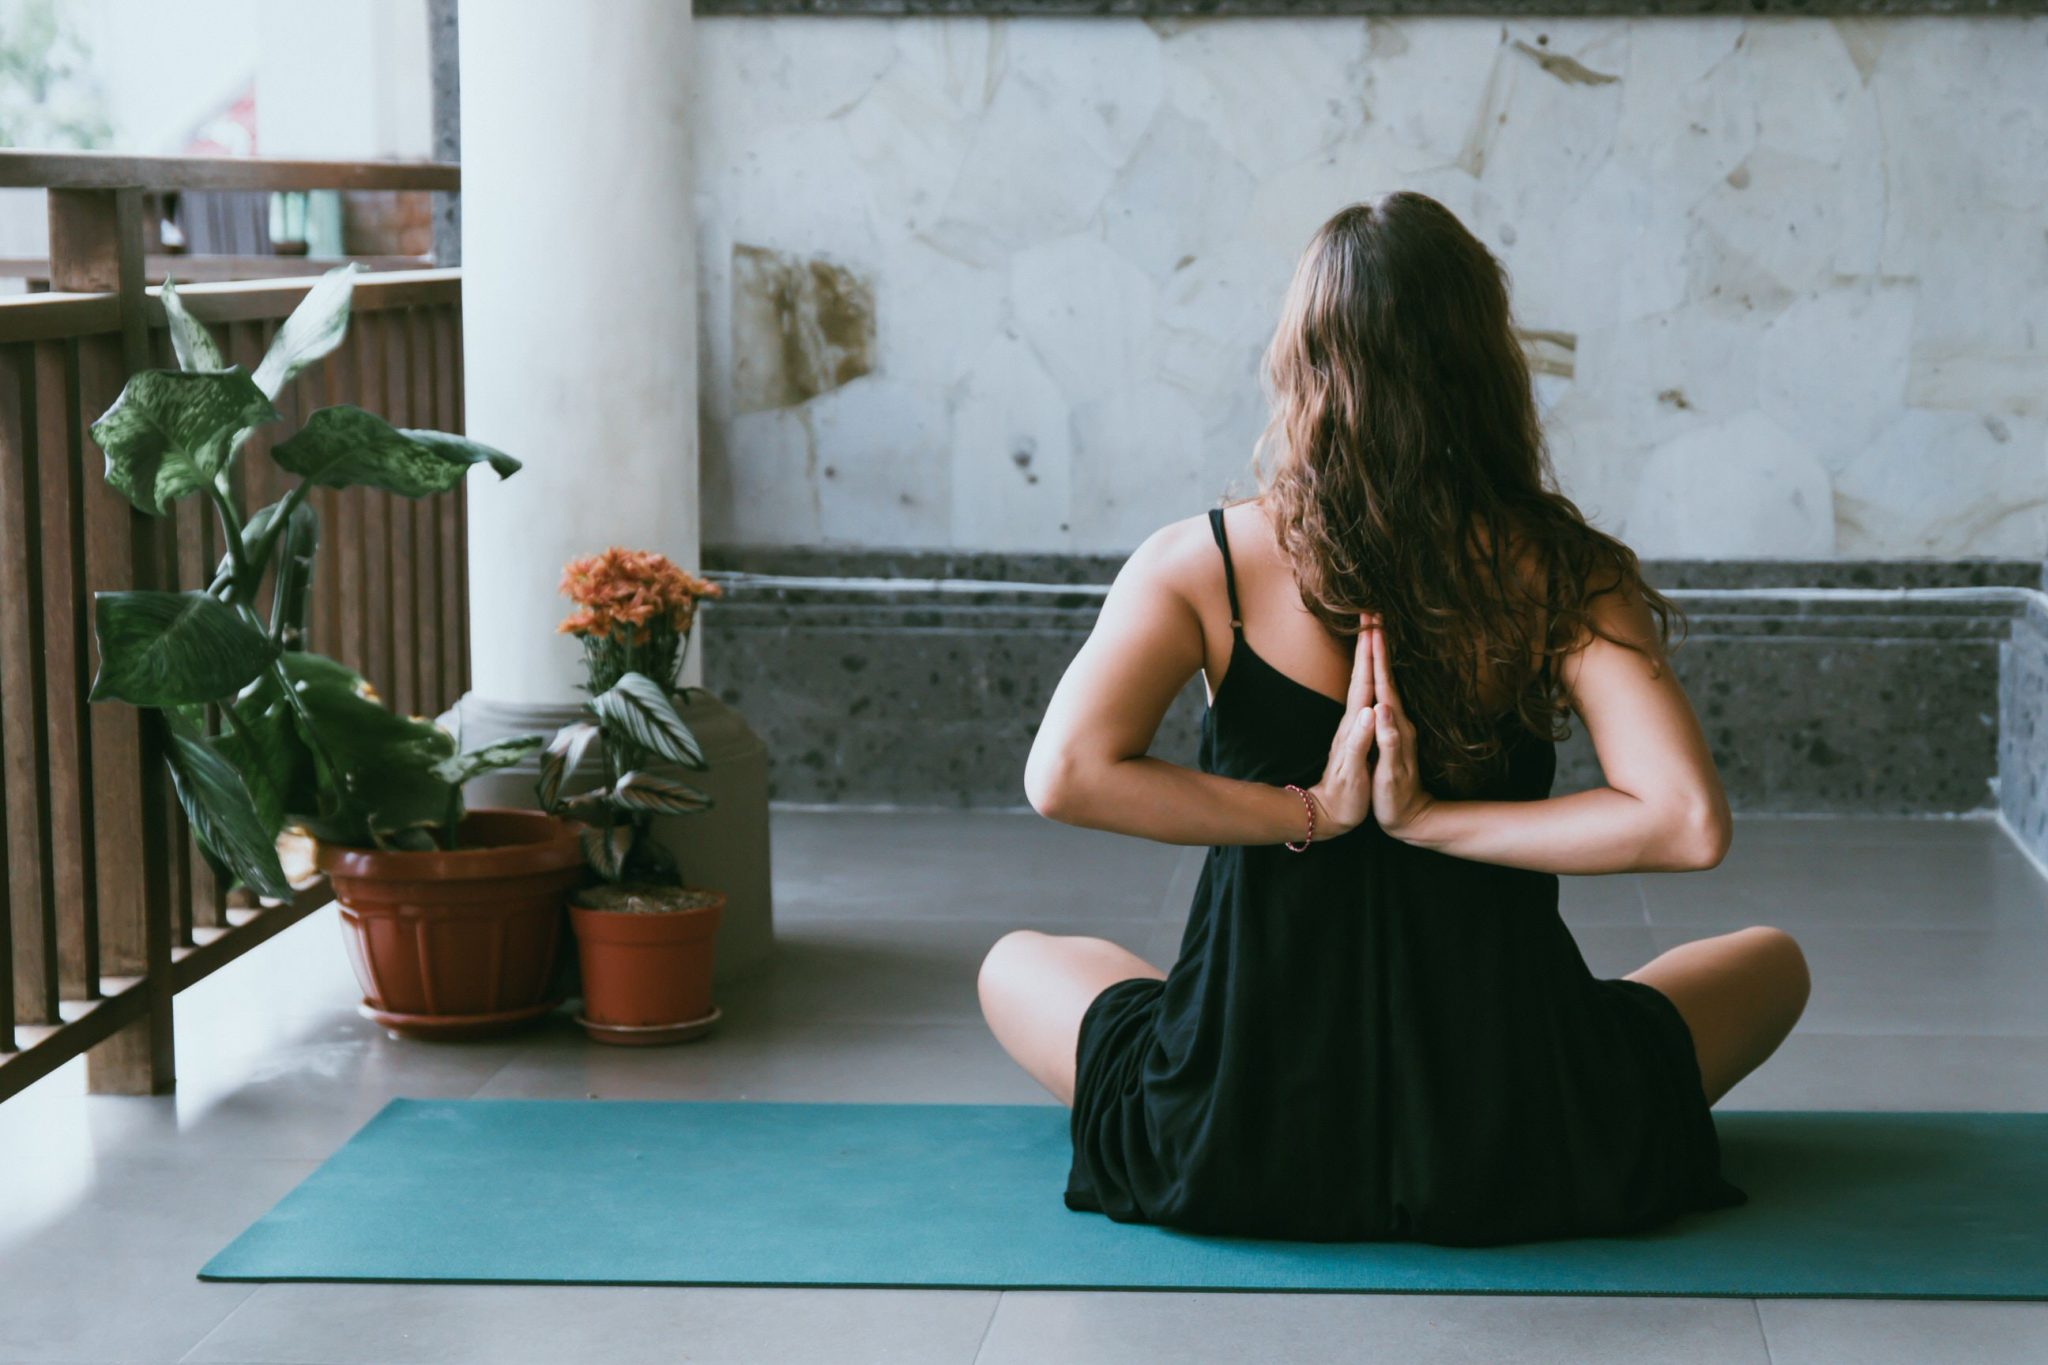 Budget-friendly tips to practice yoga at home